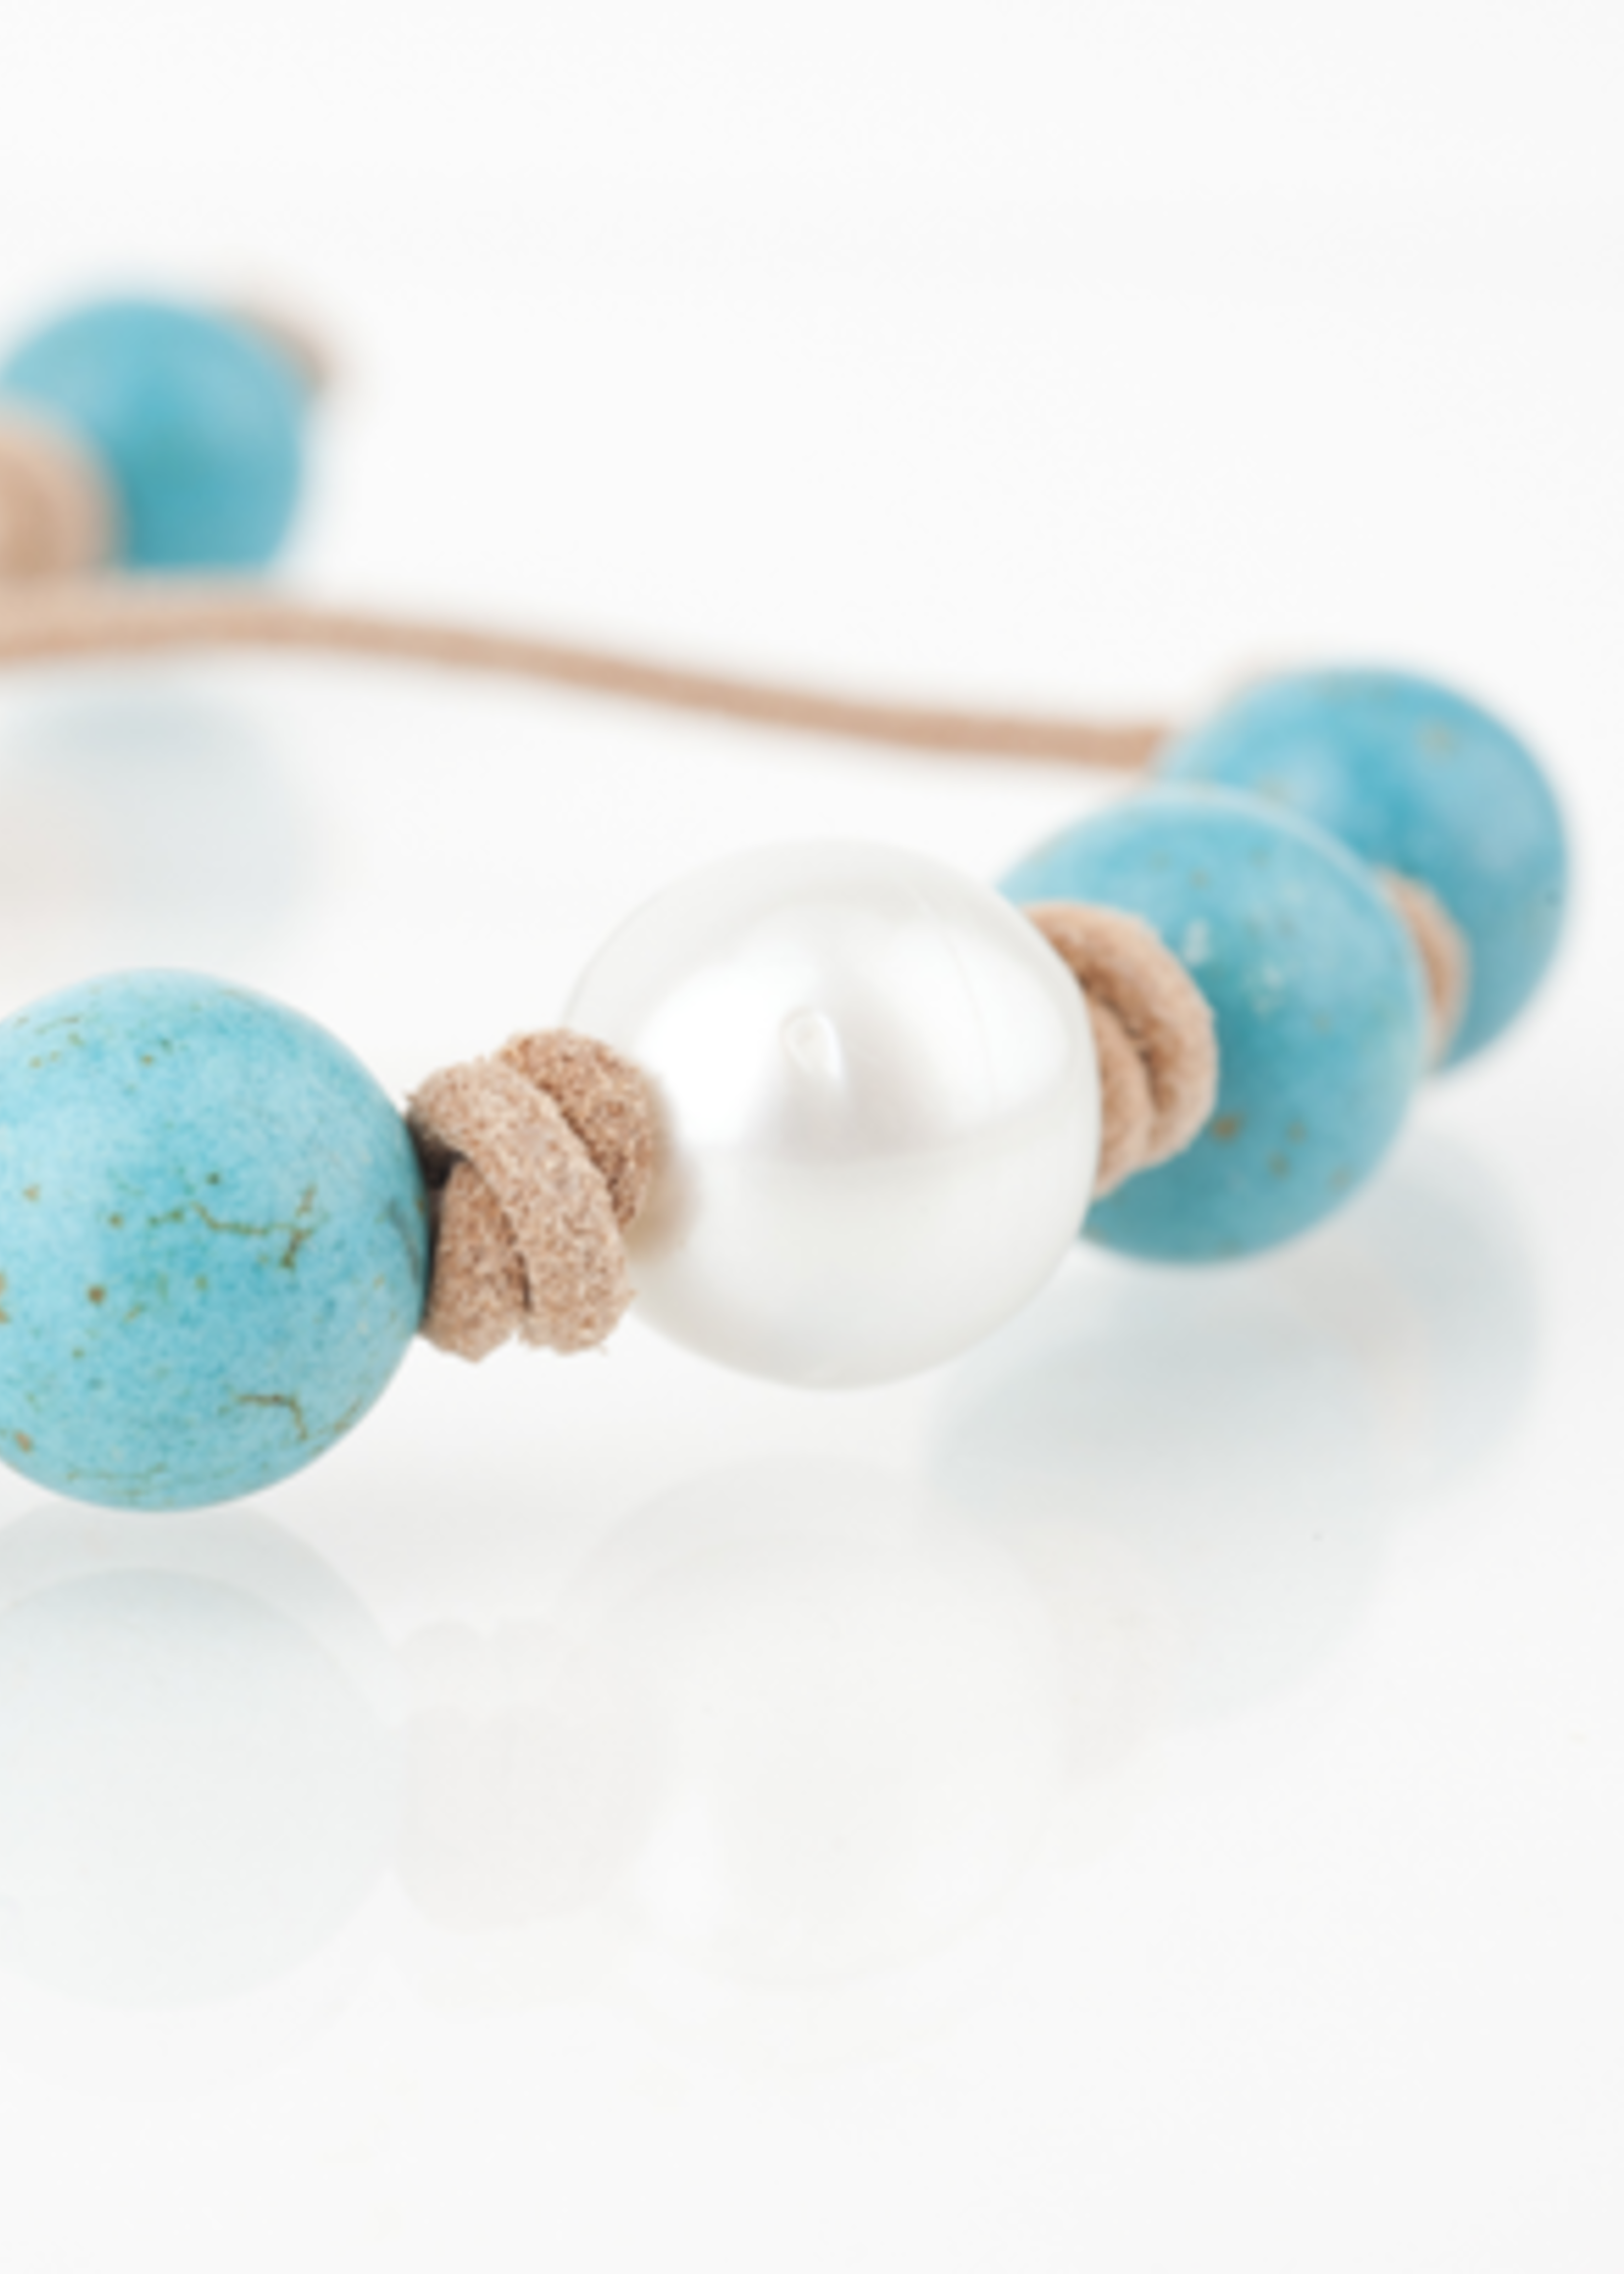 Mina Danielle Turquoise with White South Sea Pearl knotted on tan leather cord. Adjustable sliding closure.